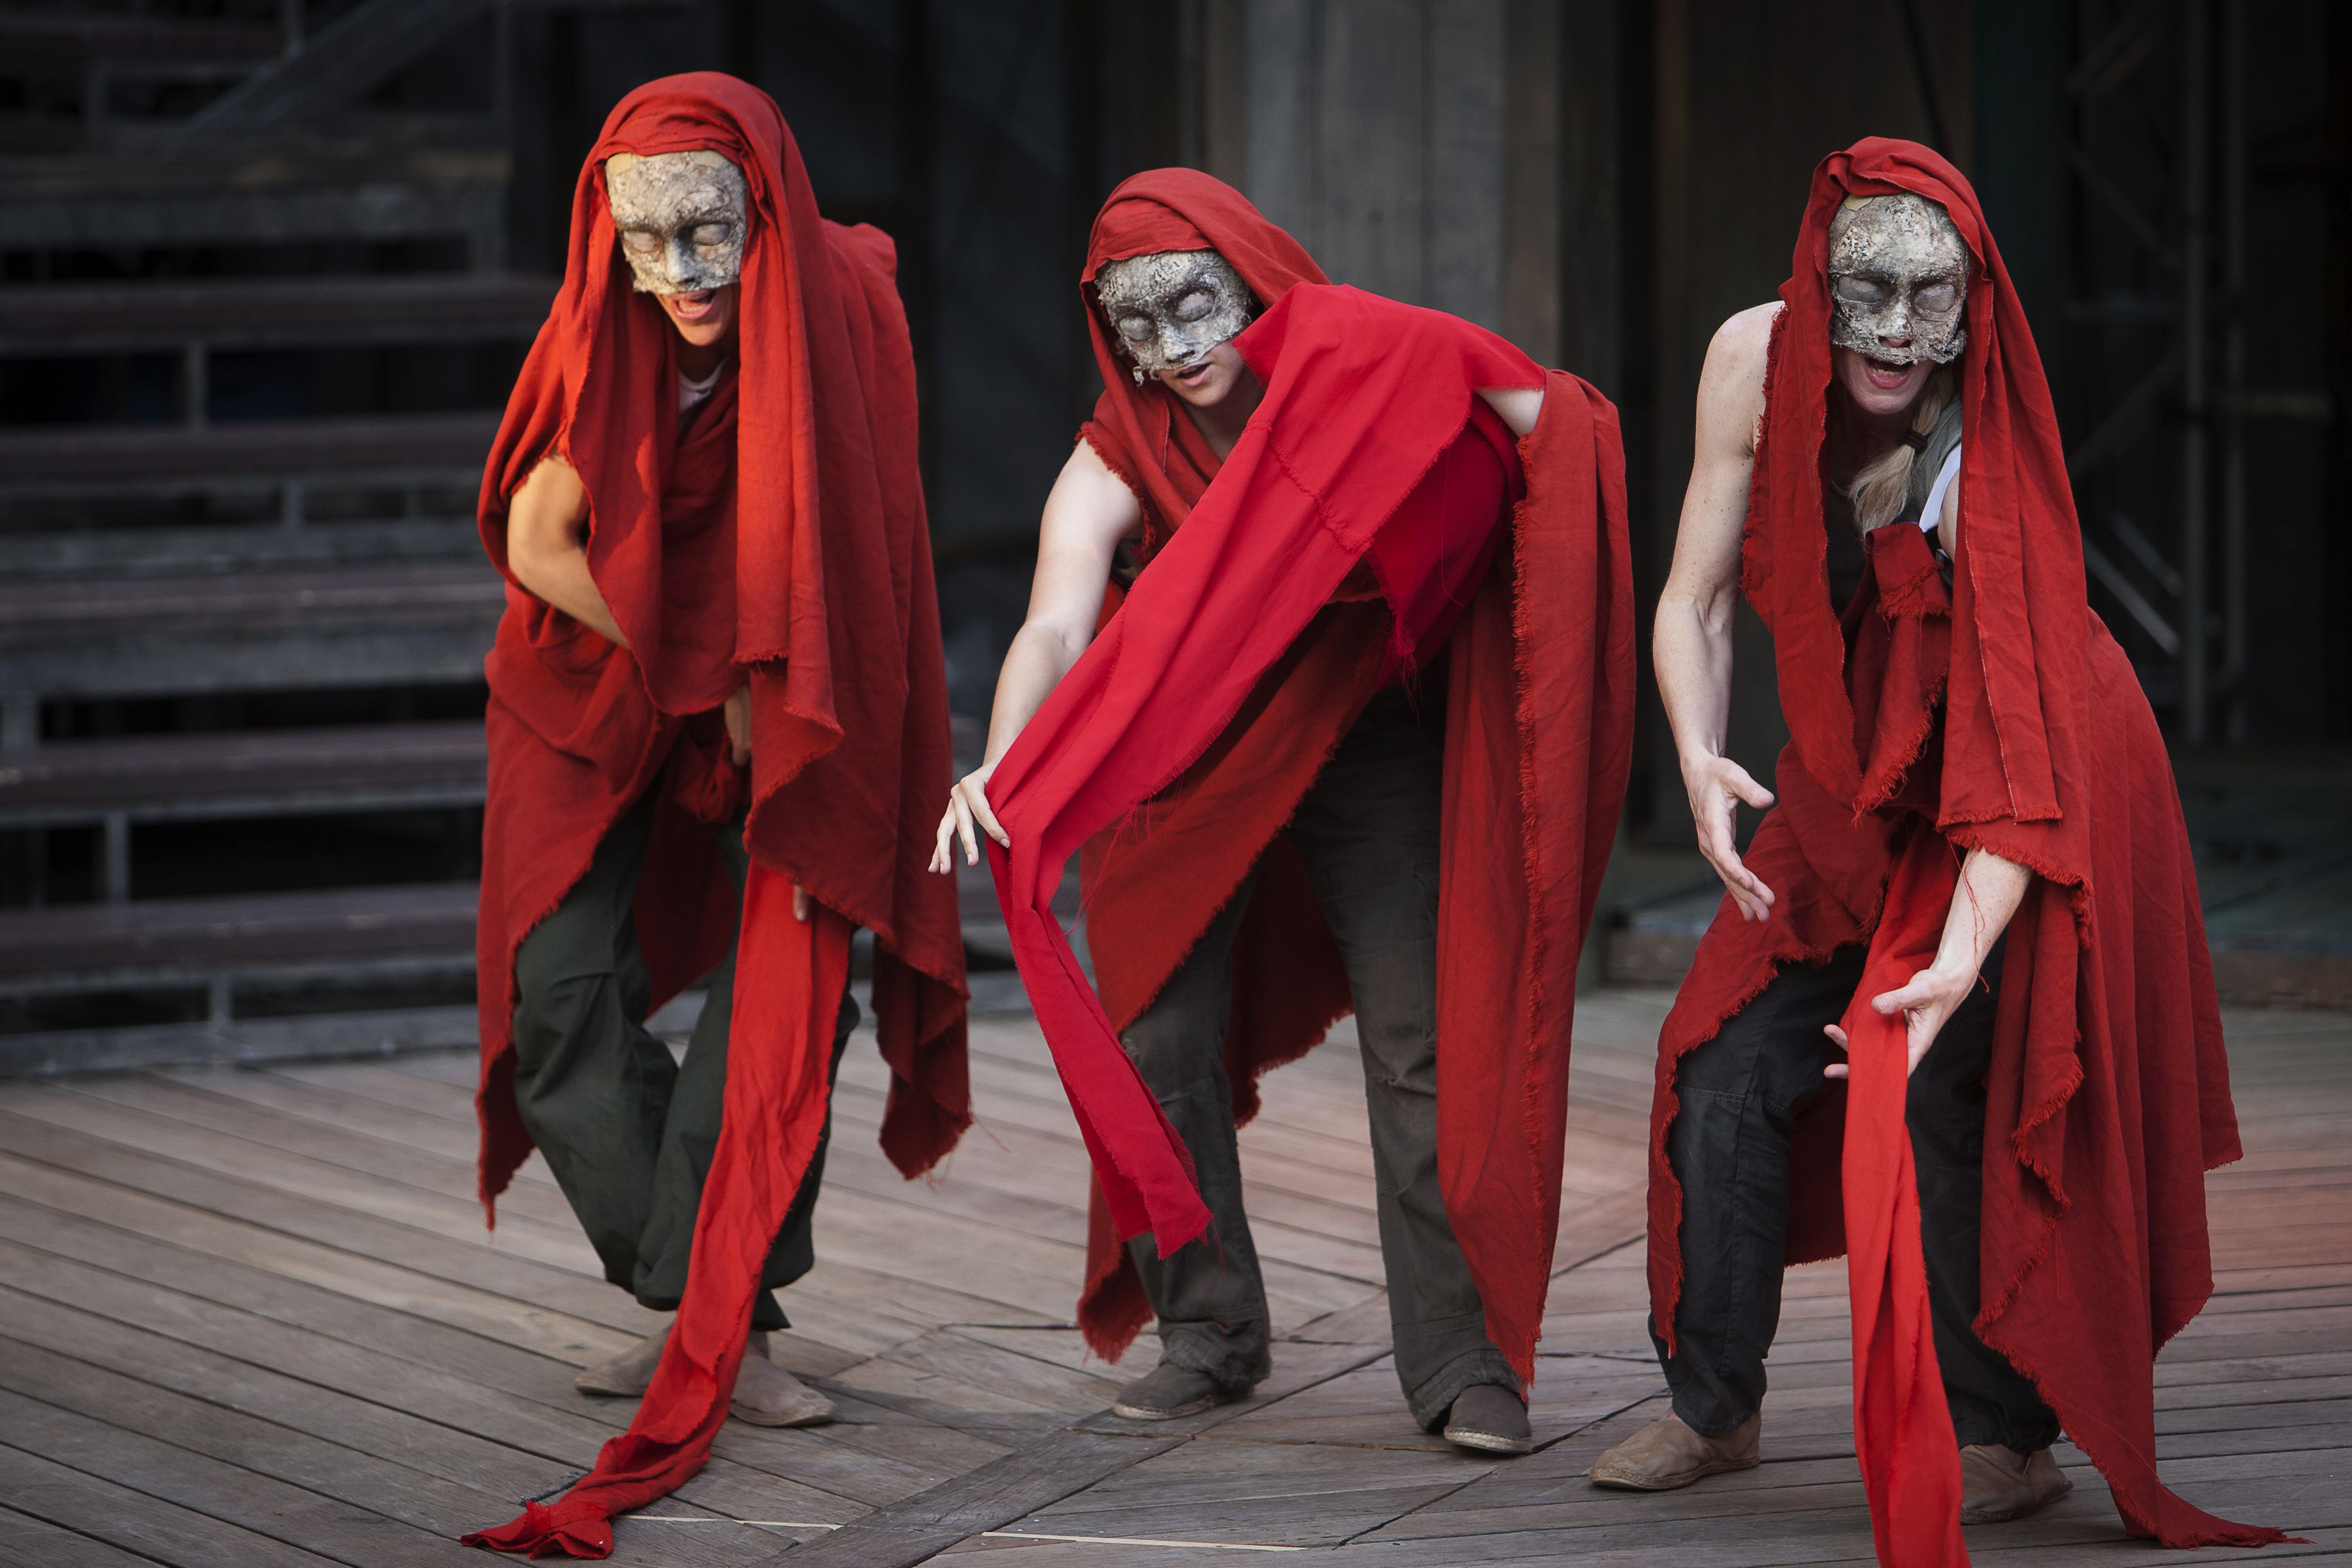 macbeth the witches essay The witches in shakespeare's 'macbeth' contribute to making the play unique these essay topics will help your students zero in on the witches and their role in relation to the rest of the play.